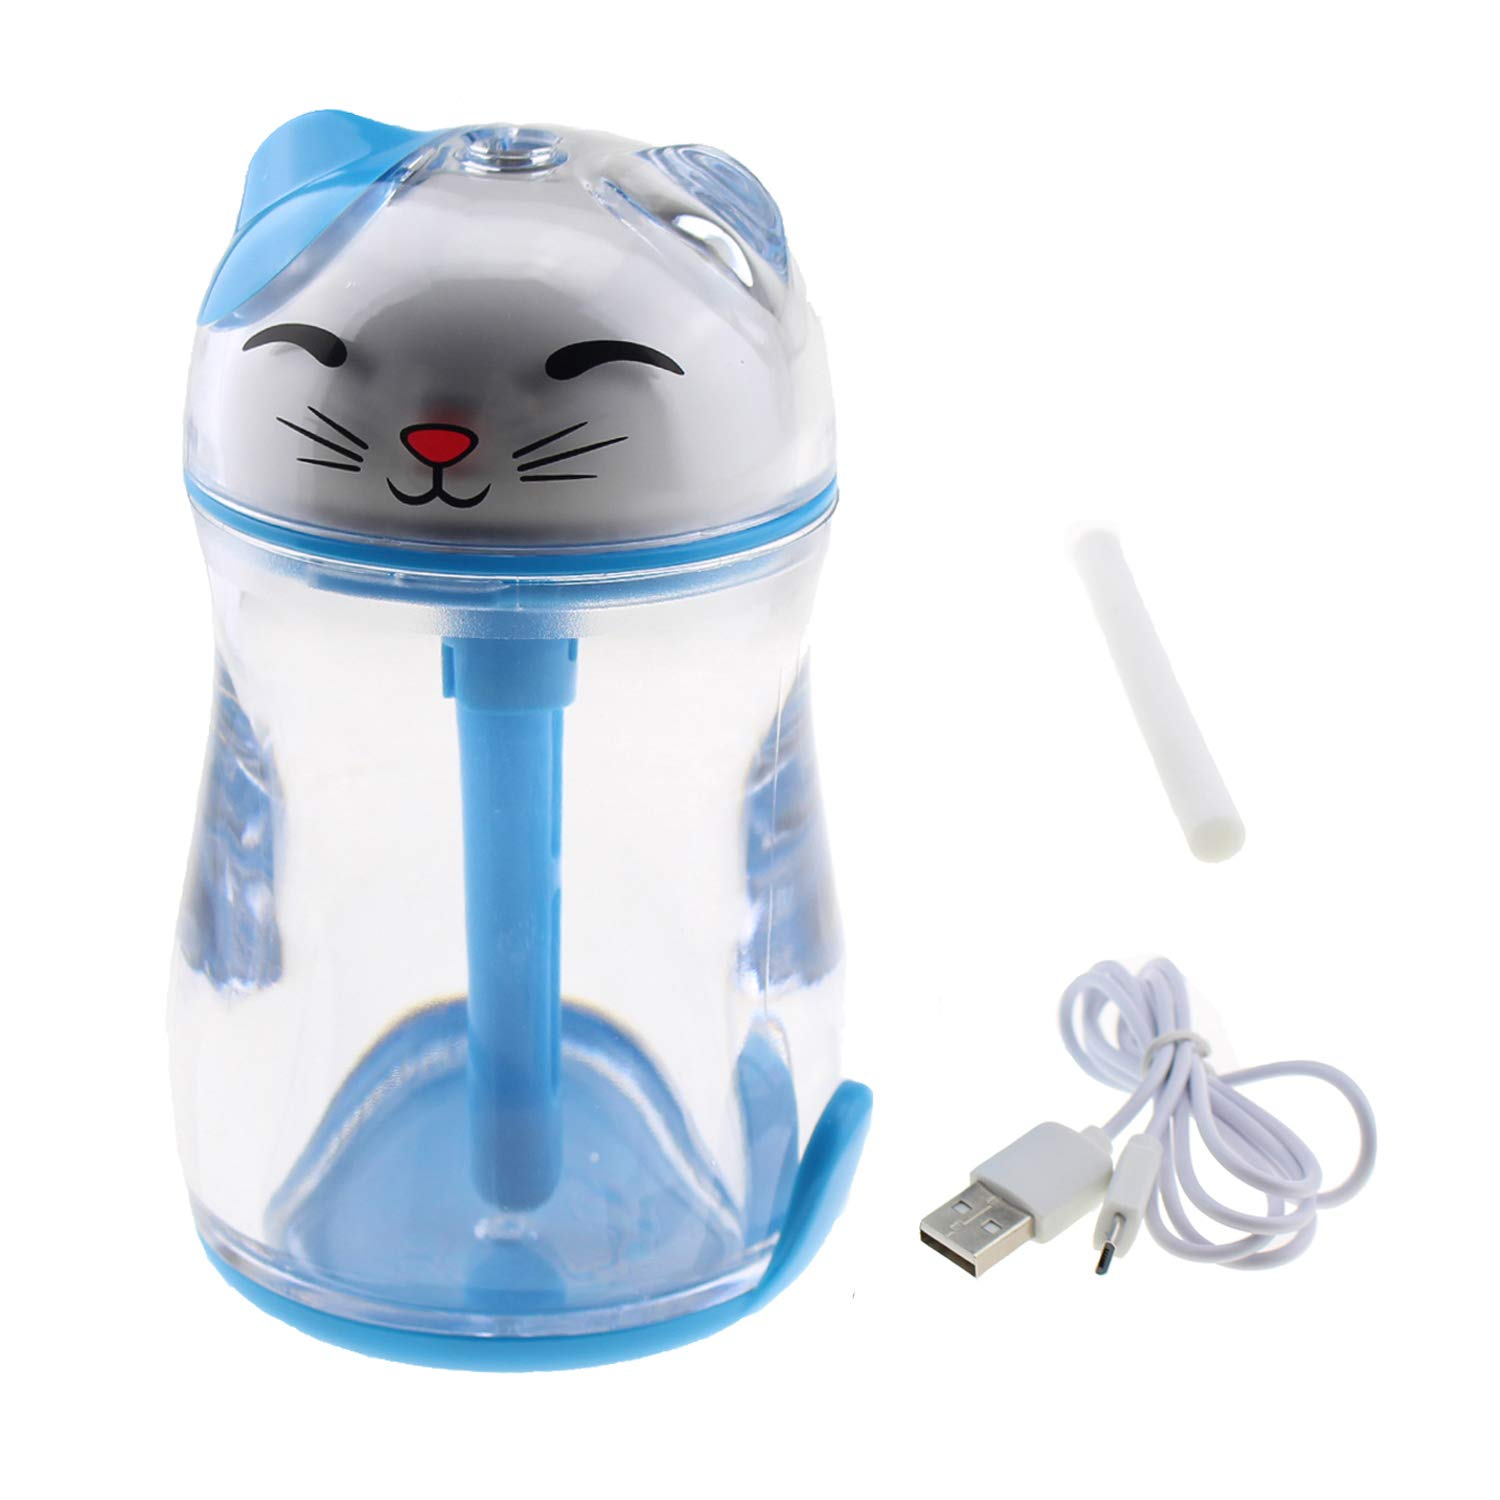 Tipmant Portable Mini Lucky Cat Air Mist Humidifier with Led Night Lights, USB Powered for Bedroom, Office, Car, Travel, Hotel etc. (Blue)